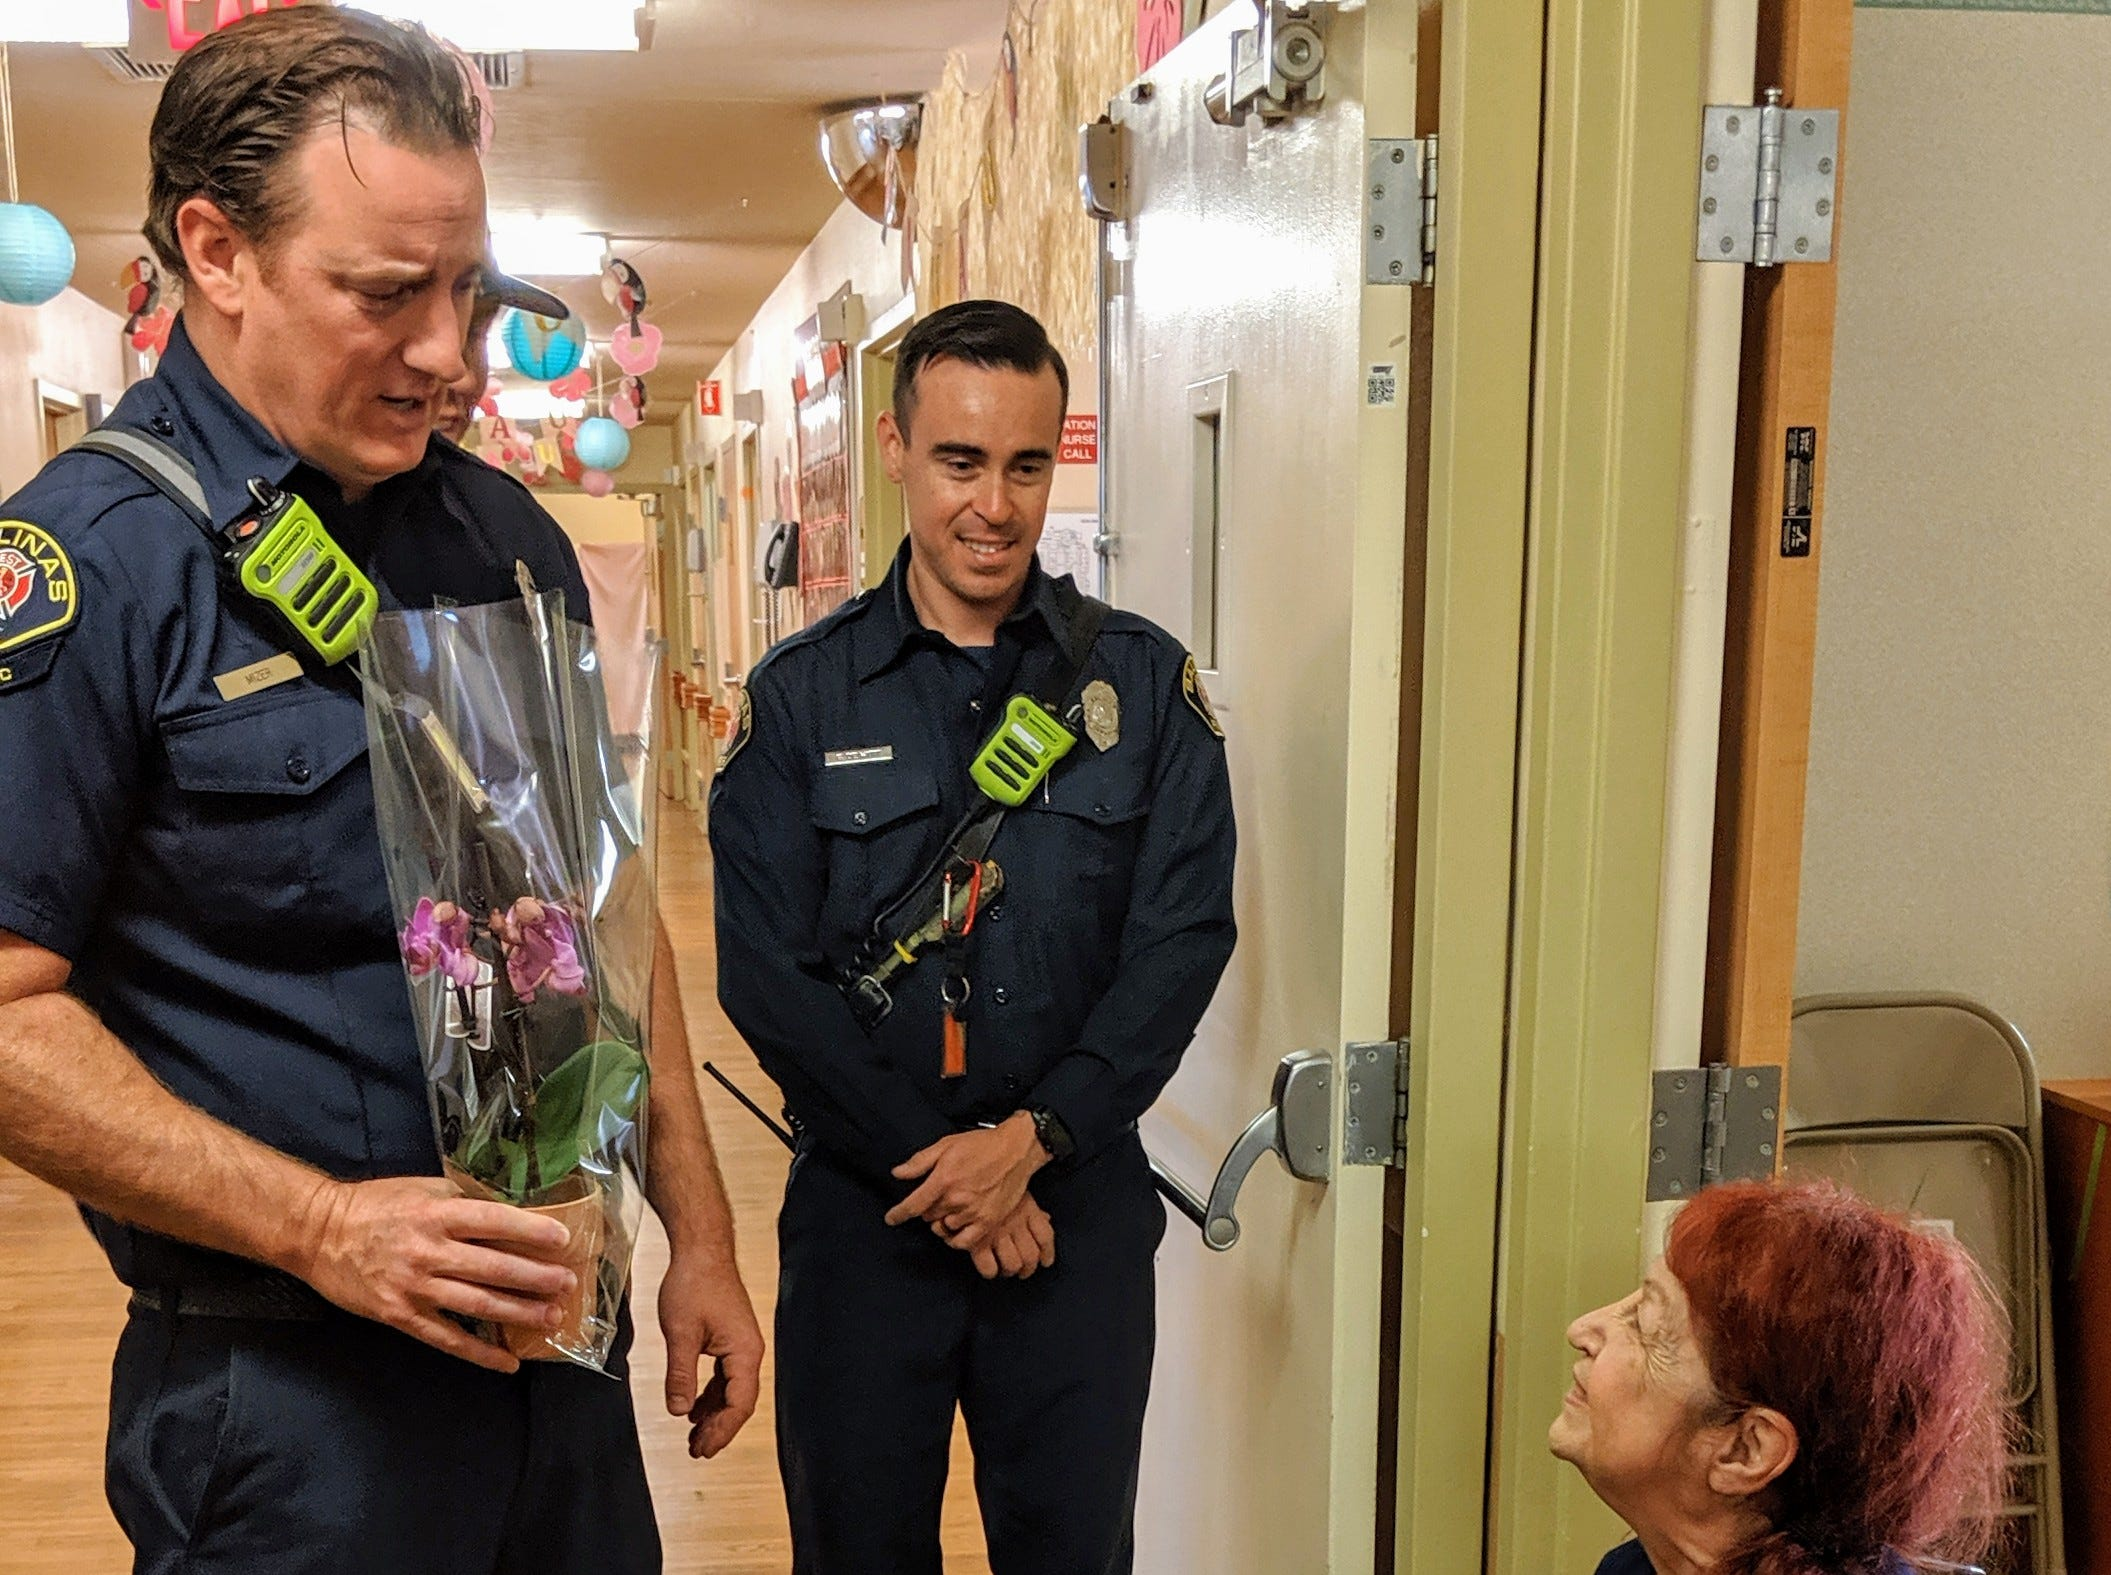 On Sunday, Salinas firefighters helped deliver Mother's Day flowersflowers to senior women living in long-term care facilities.